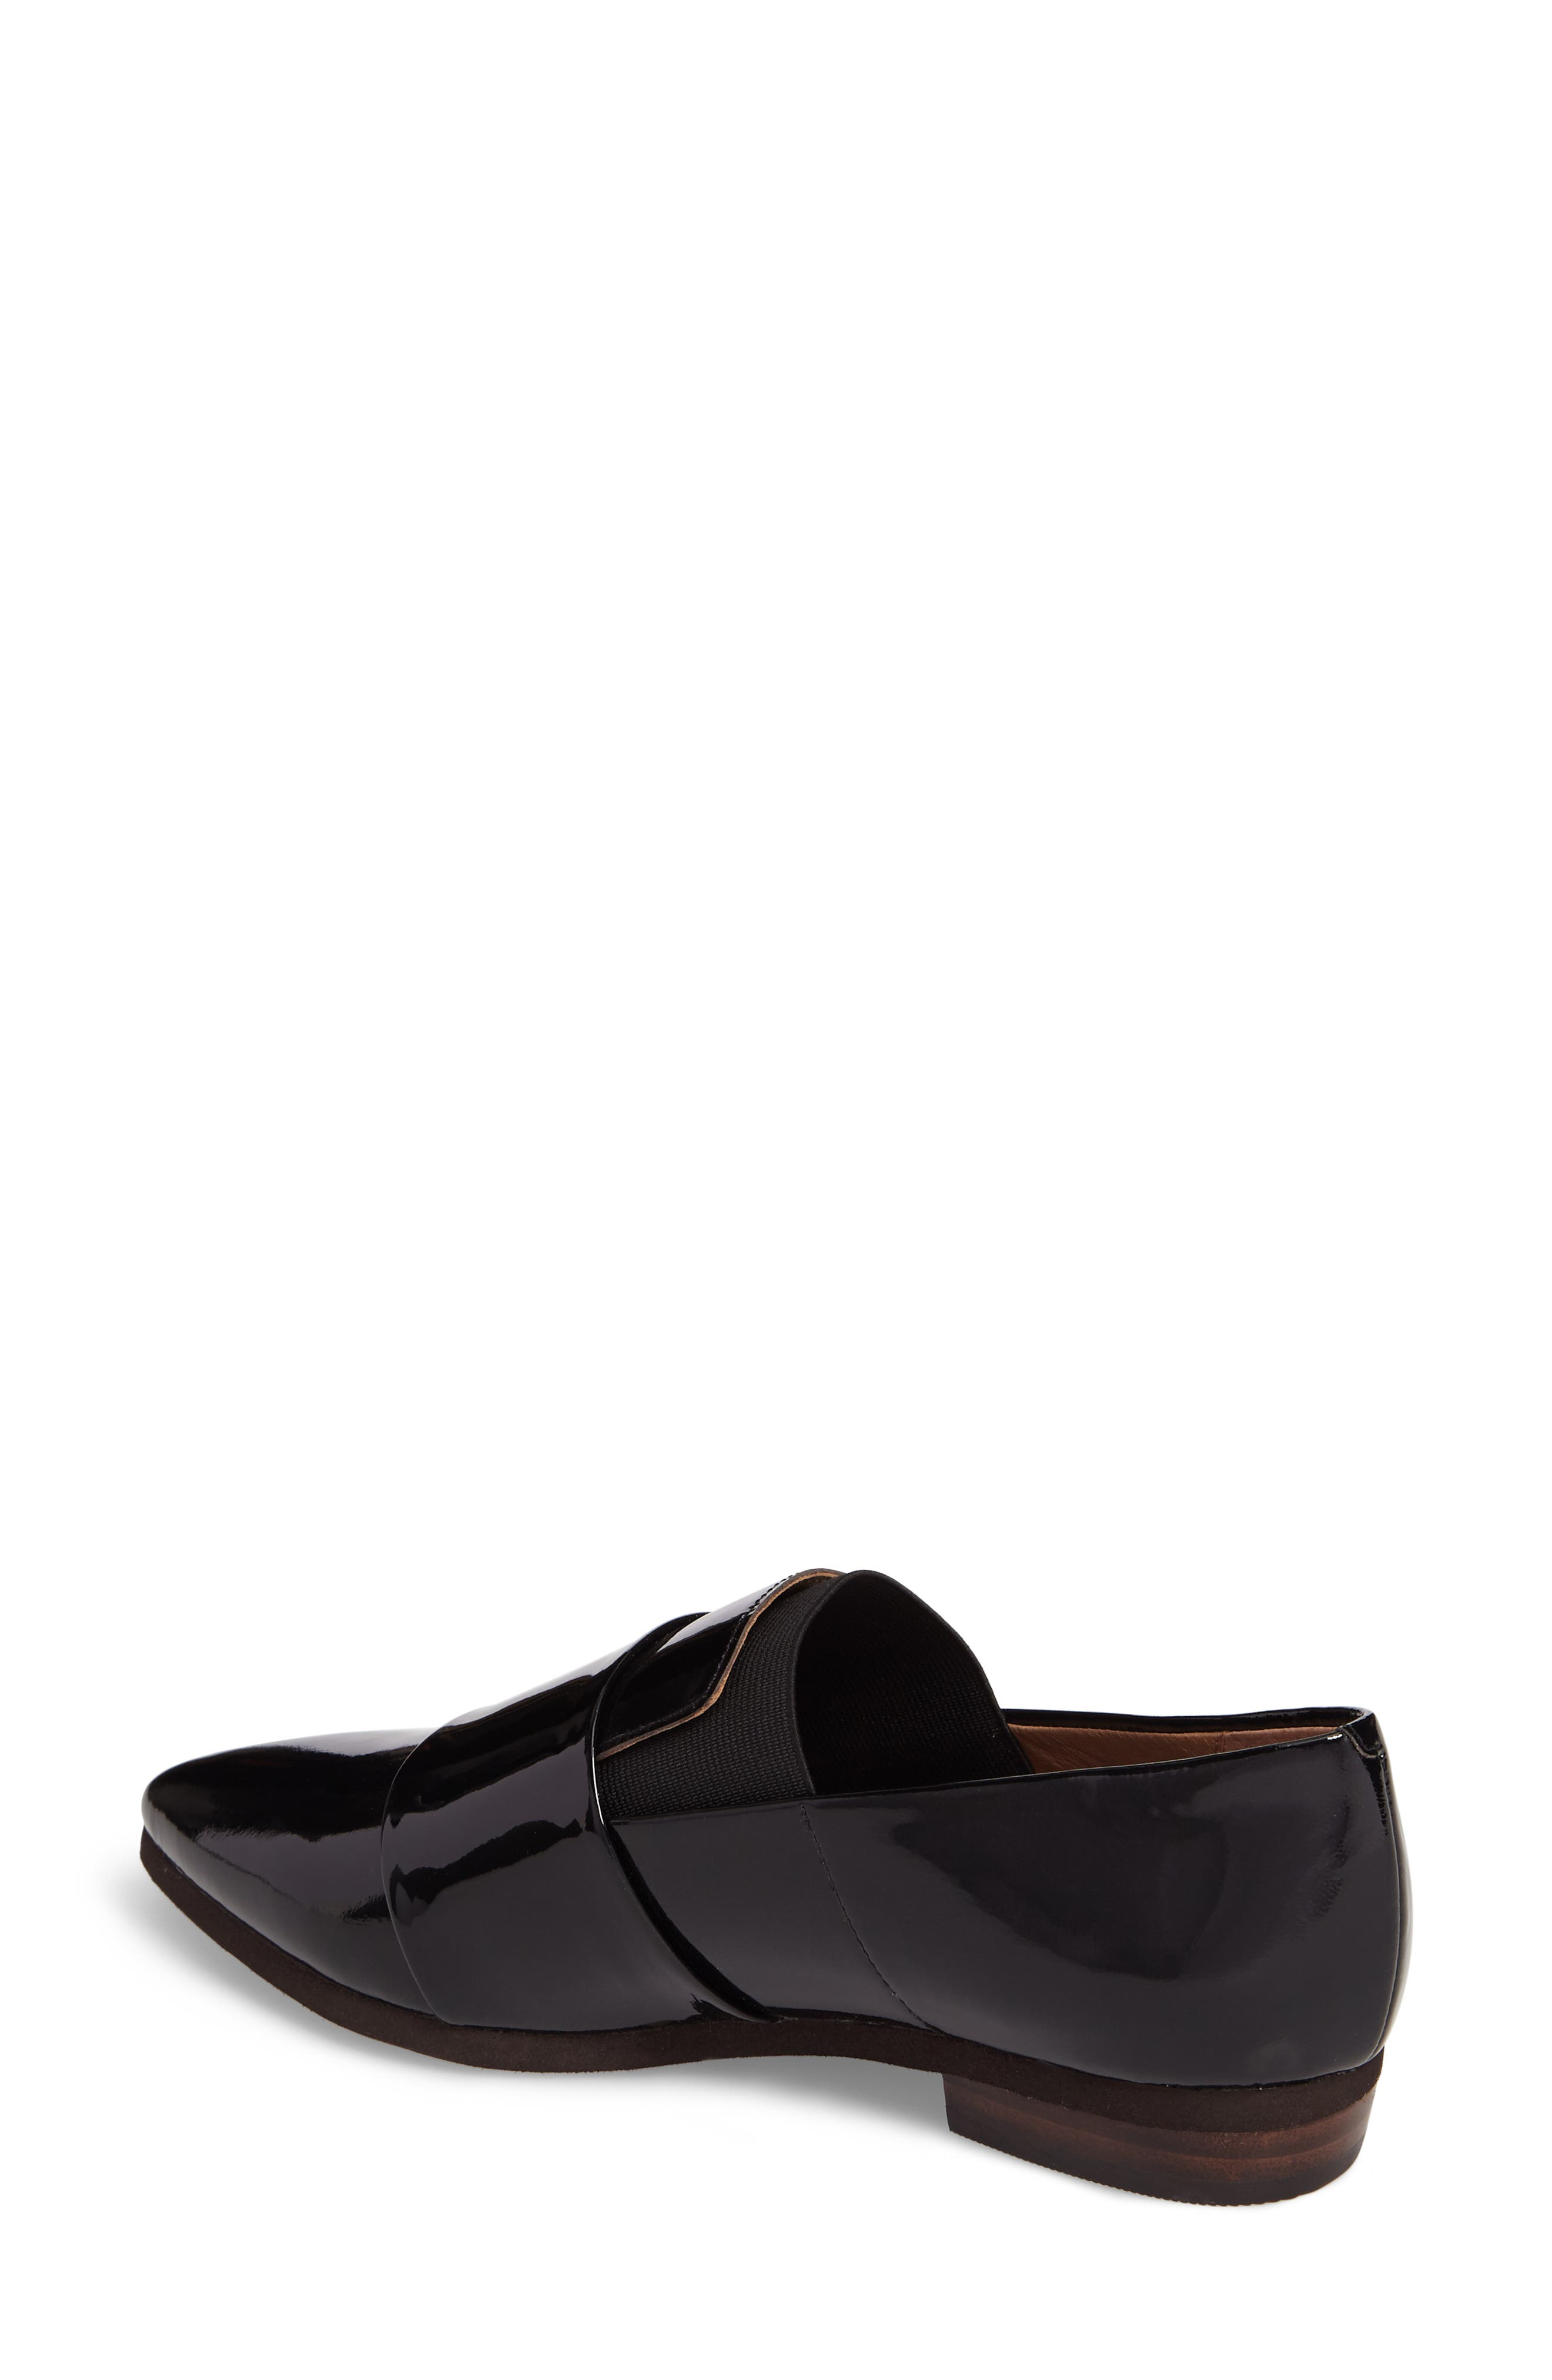 Alternate Image 2  - Linea Paolo Madison Loafer (Women)